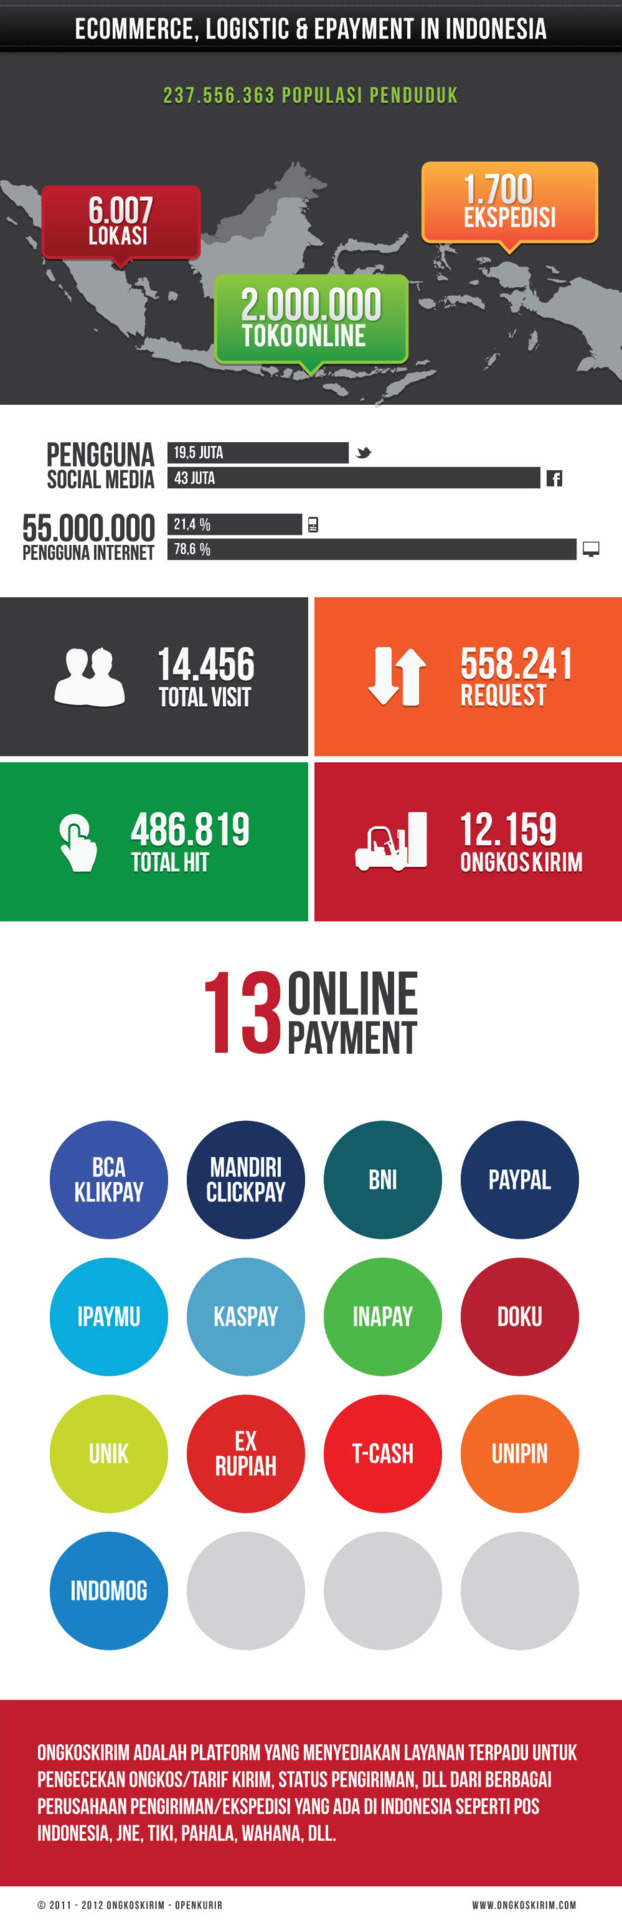 Logistic and ePayment in Indonesia (Infographic